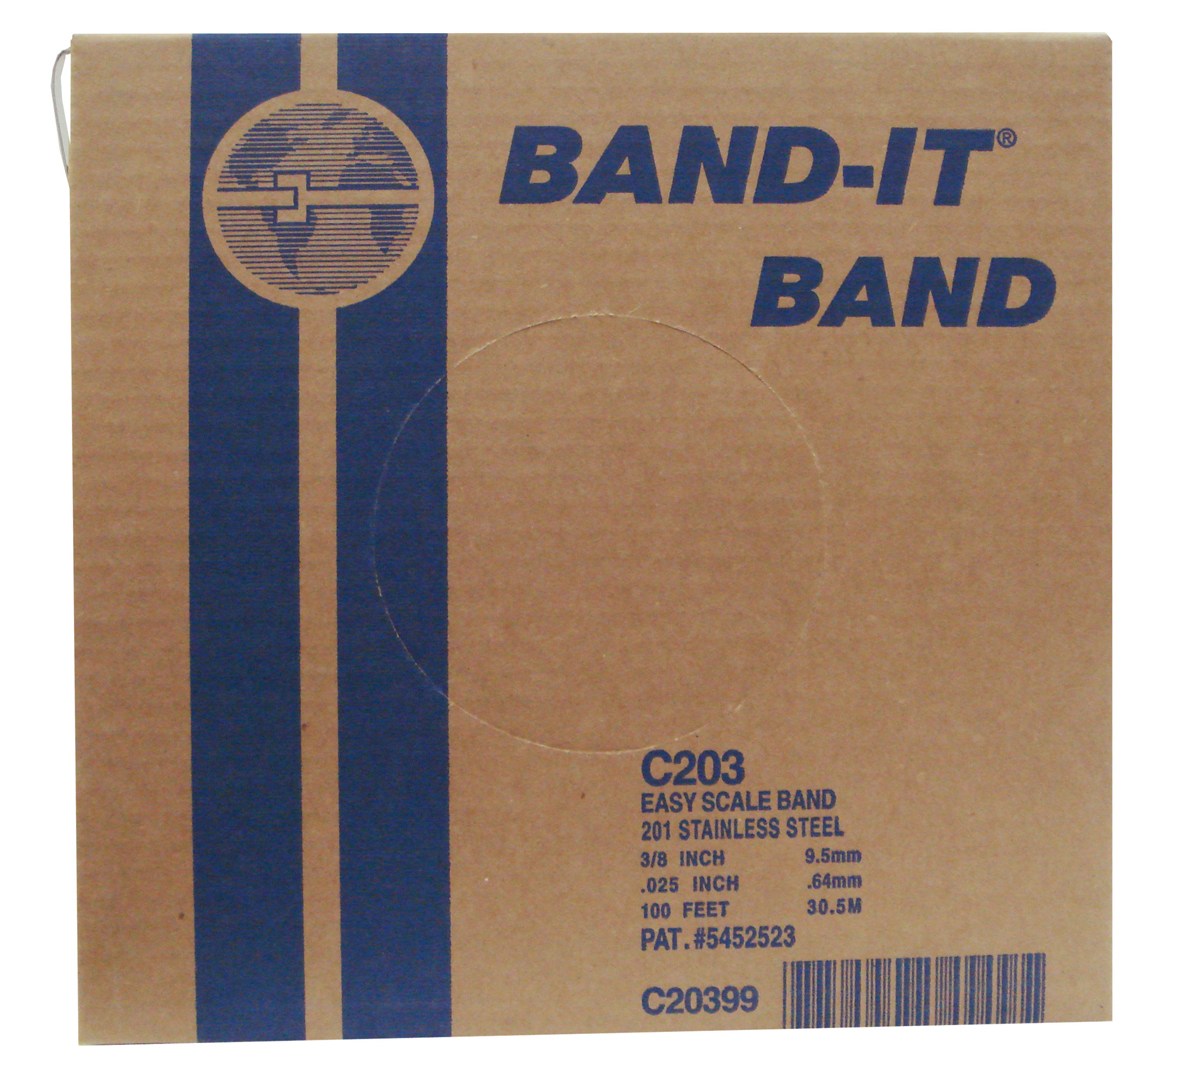 Band-it 201 Stainless Steel Band